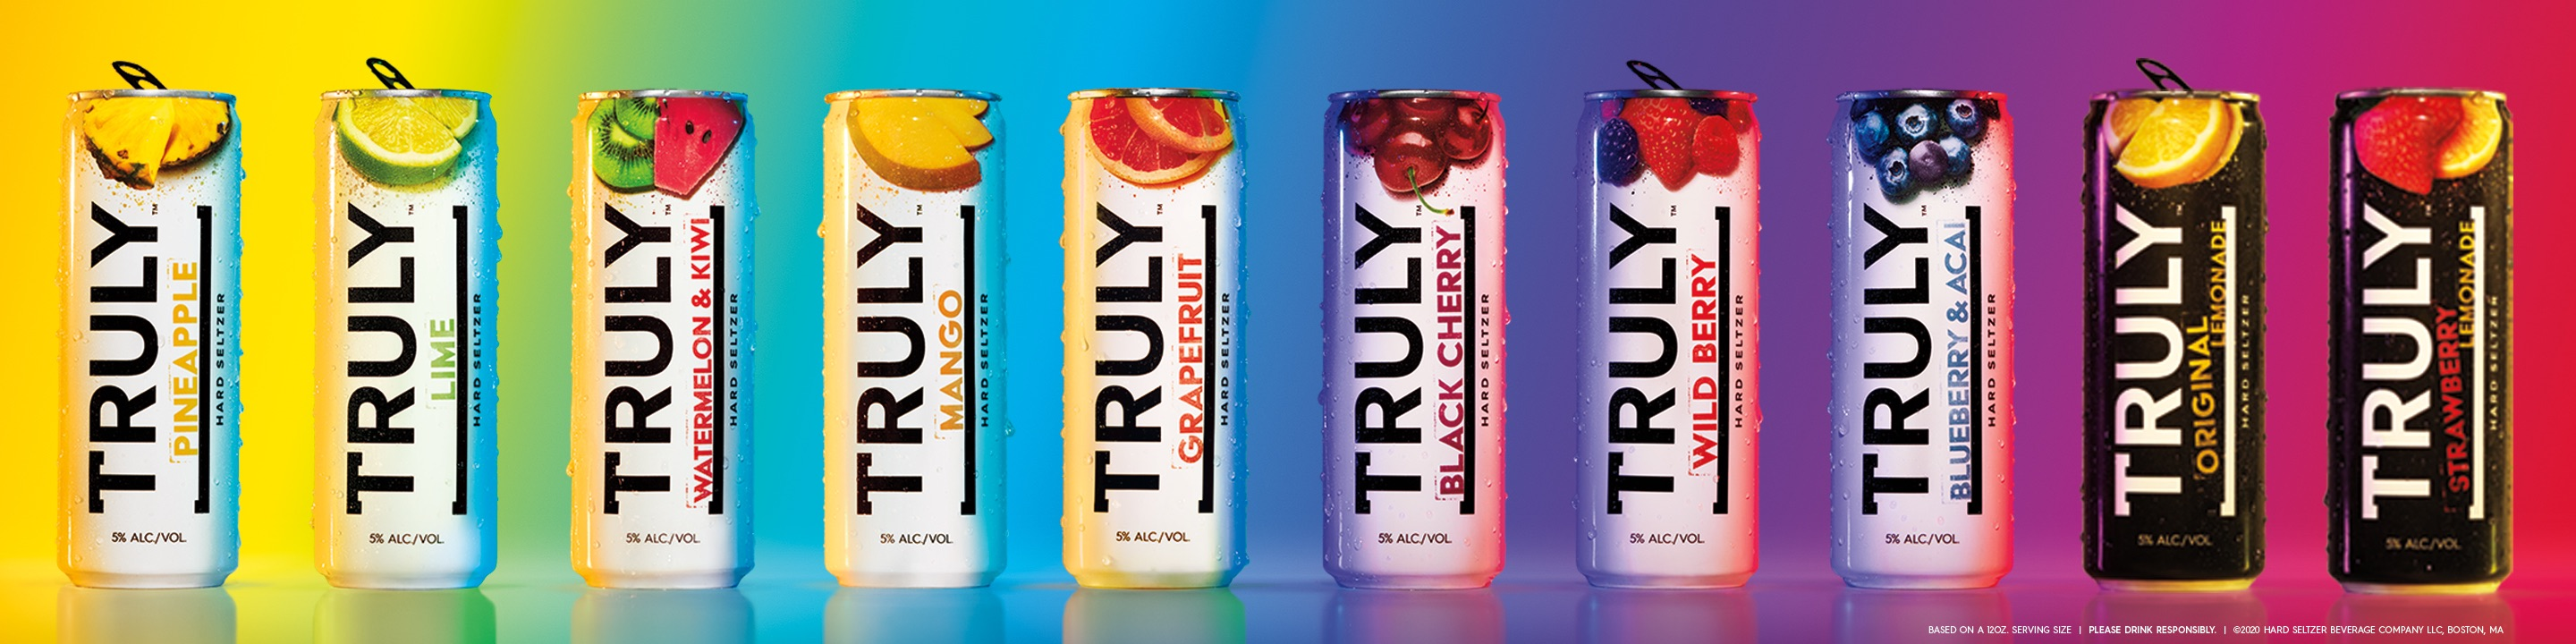 Truly Refreshing Styles. Made Simply. We searched the world to find the highest quality fruits that make Truly so delicious. Every batch is made with simple, natural ingredients and hints of fruit. No artificial flavors or sweeteners. Just 100 calories and 5% Alc./Vol.